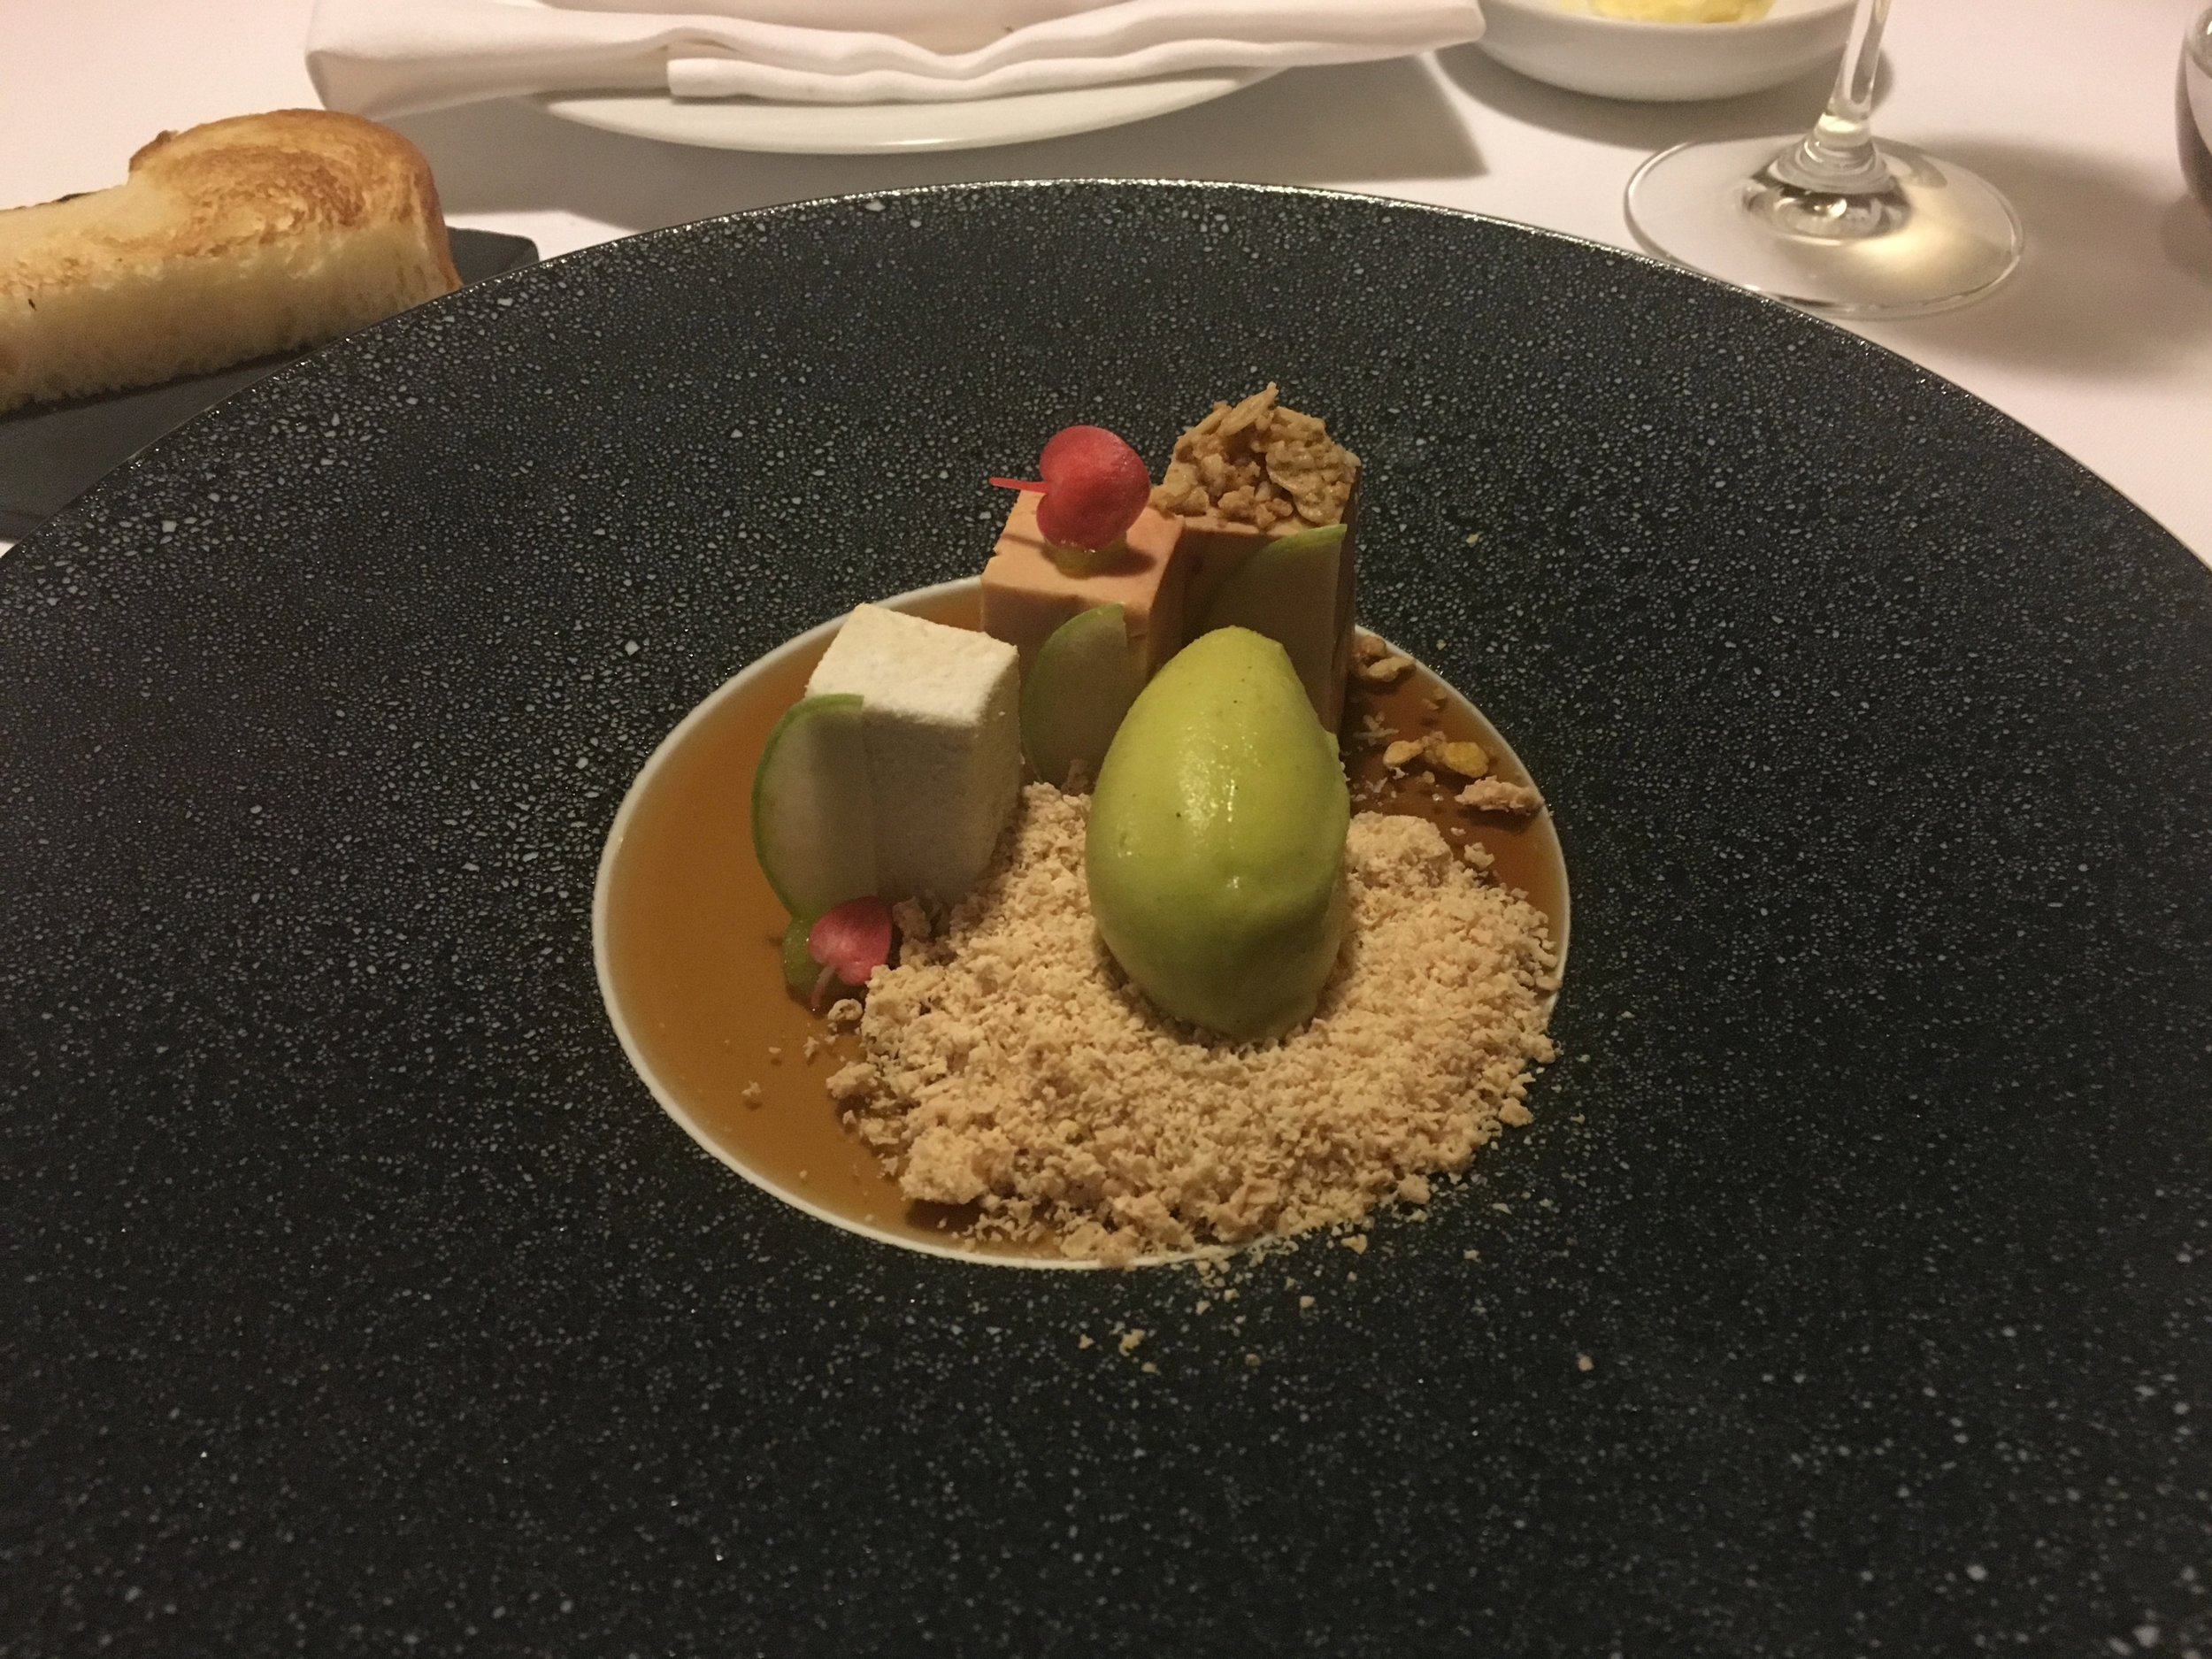 Delicious liver with peach sorbet